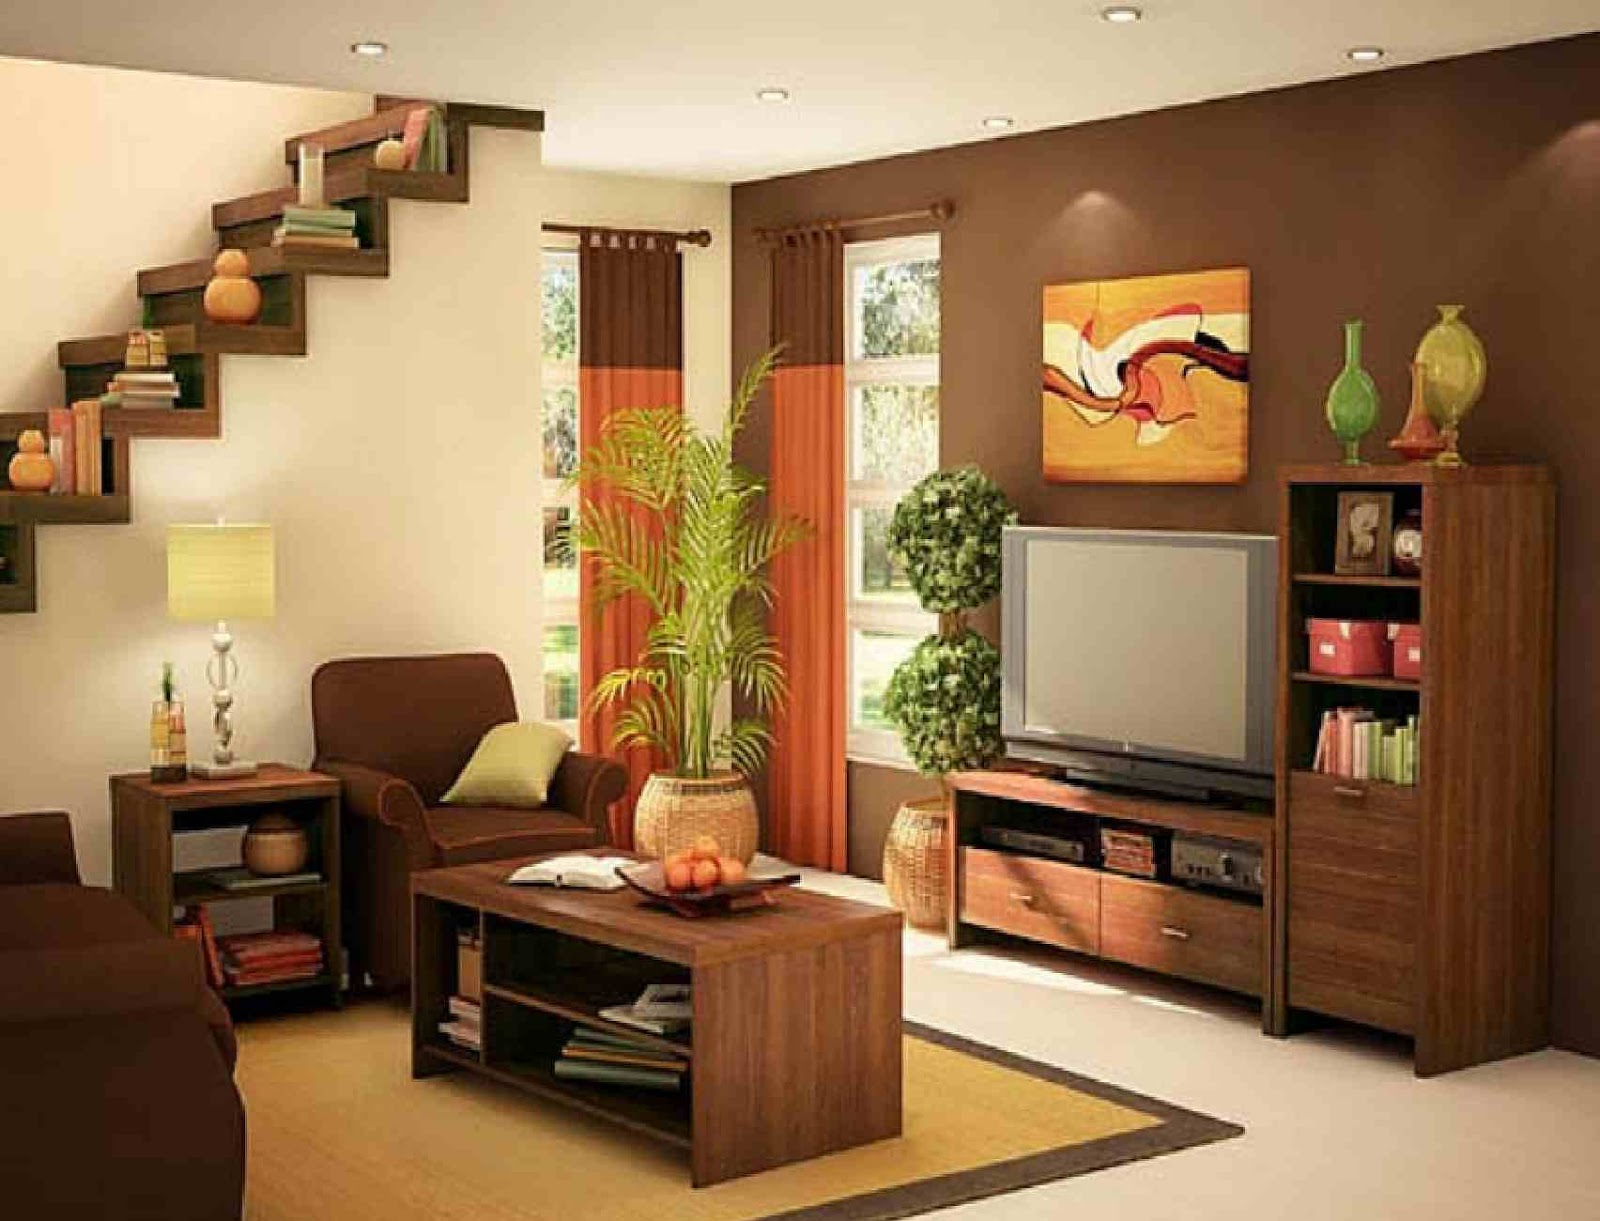 Home interior designs simple living room designs for Simple interior decoration